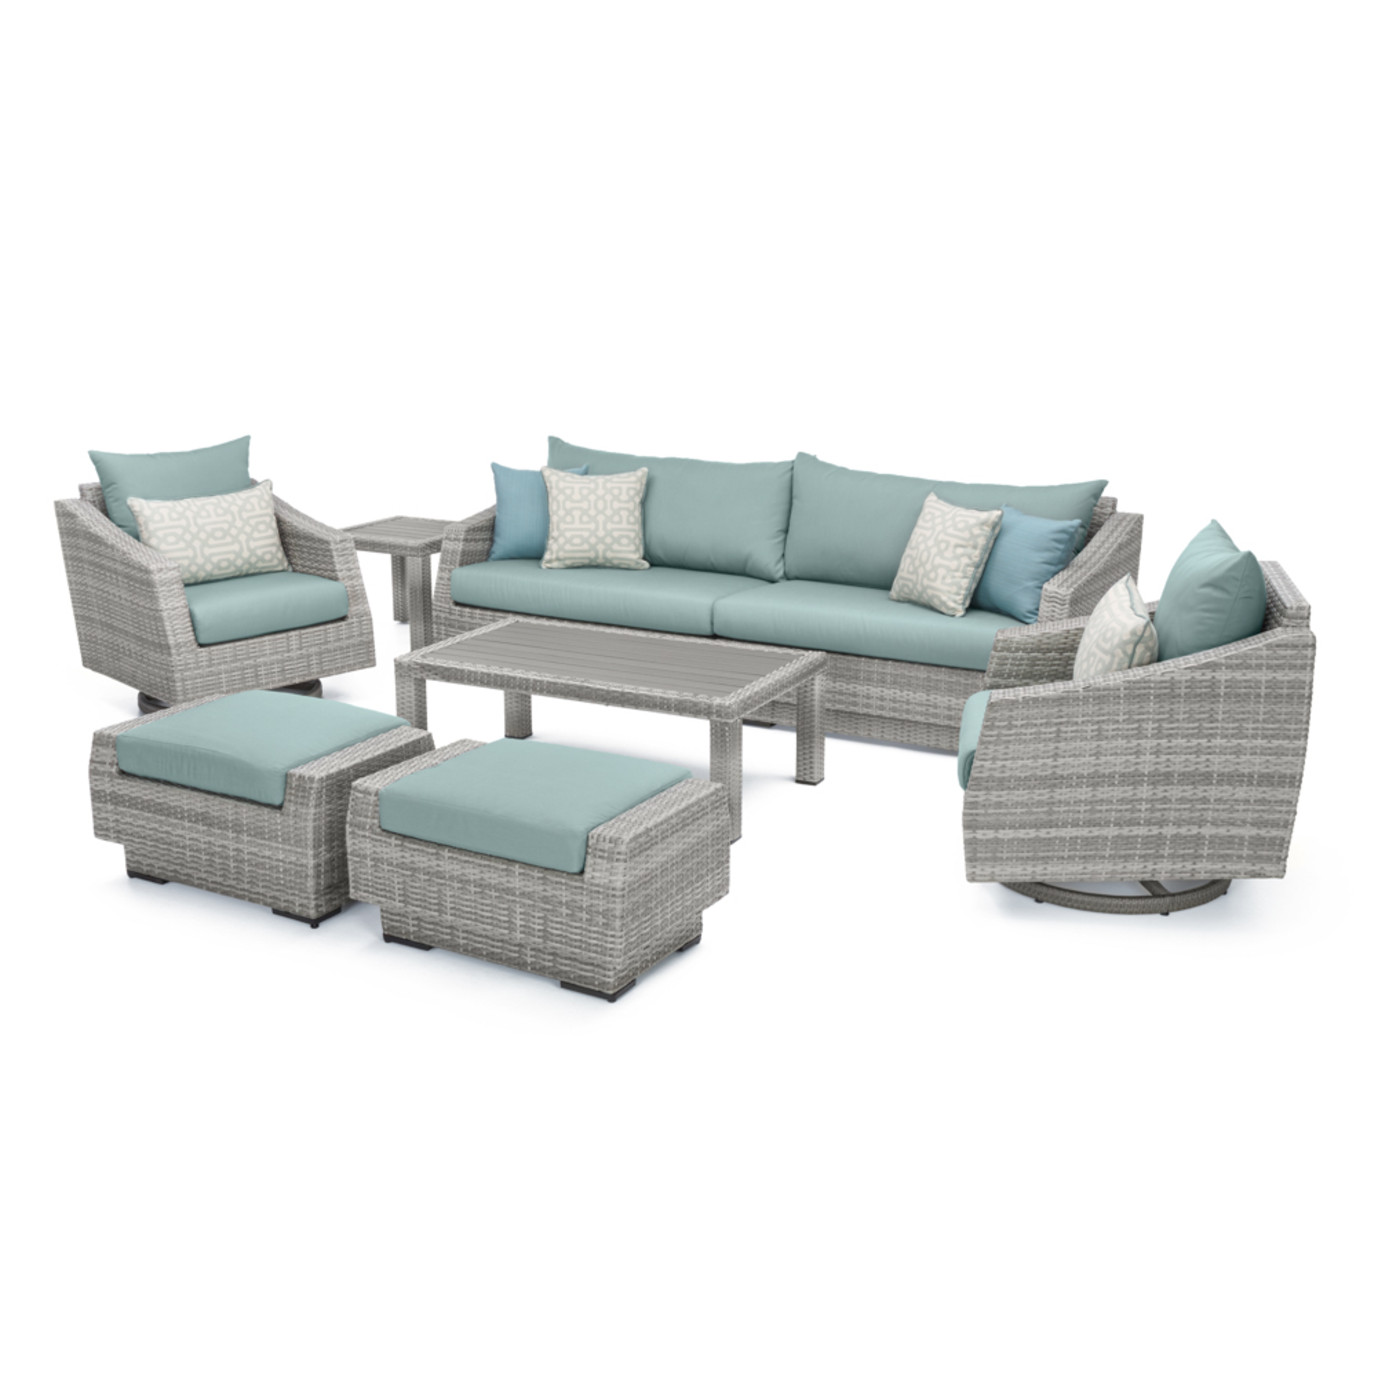 Cannes™ Deluxe 8pc Sofa & Club Chair Set - Spa Blue